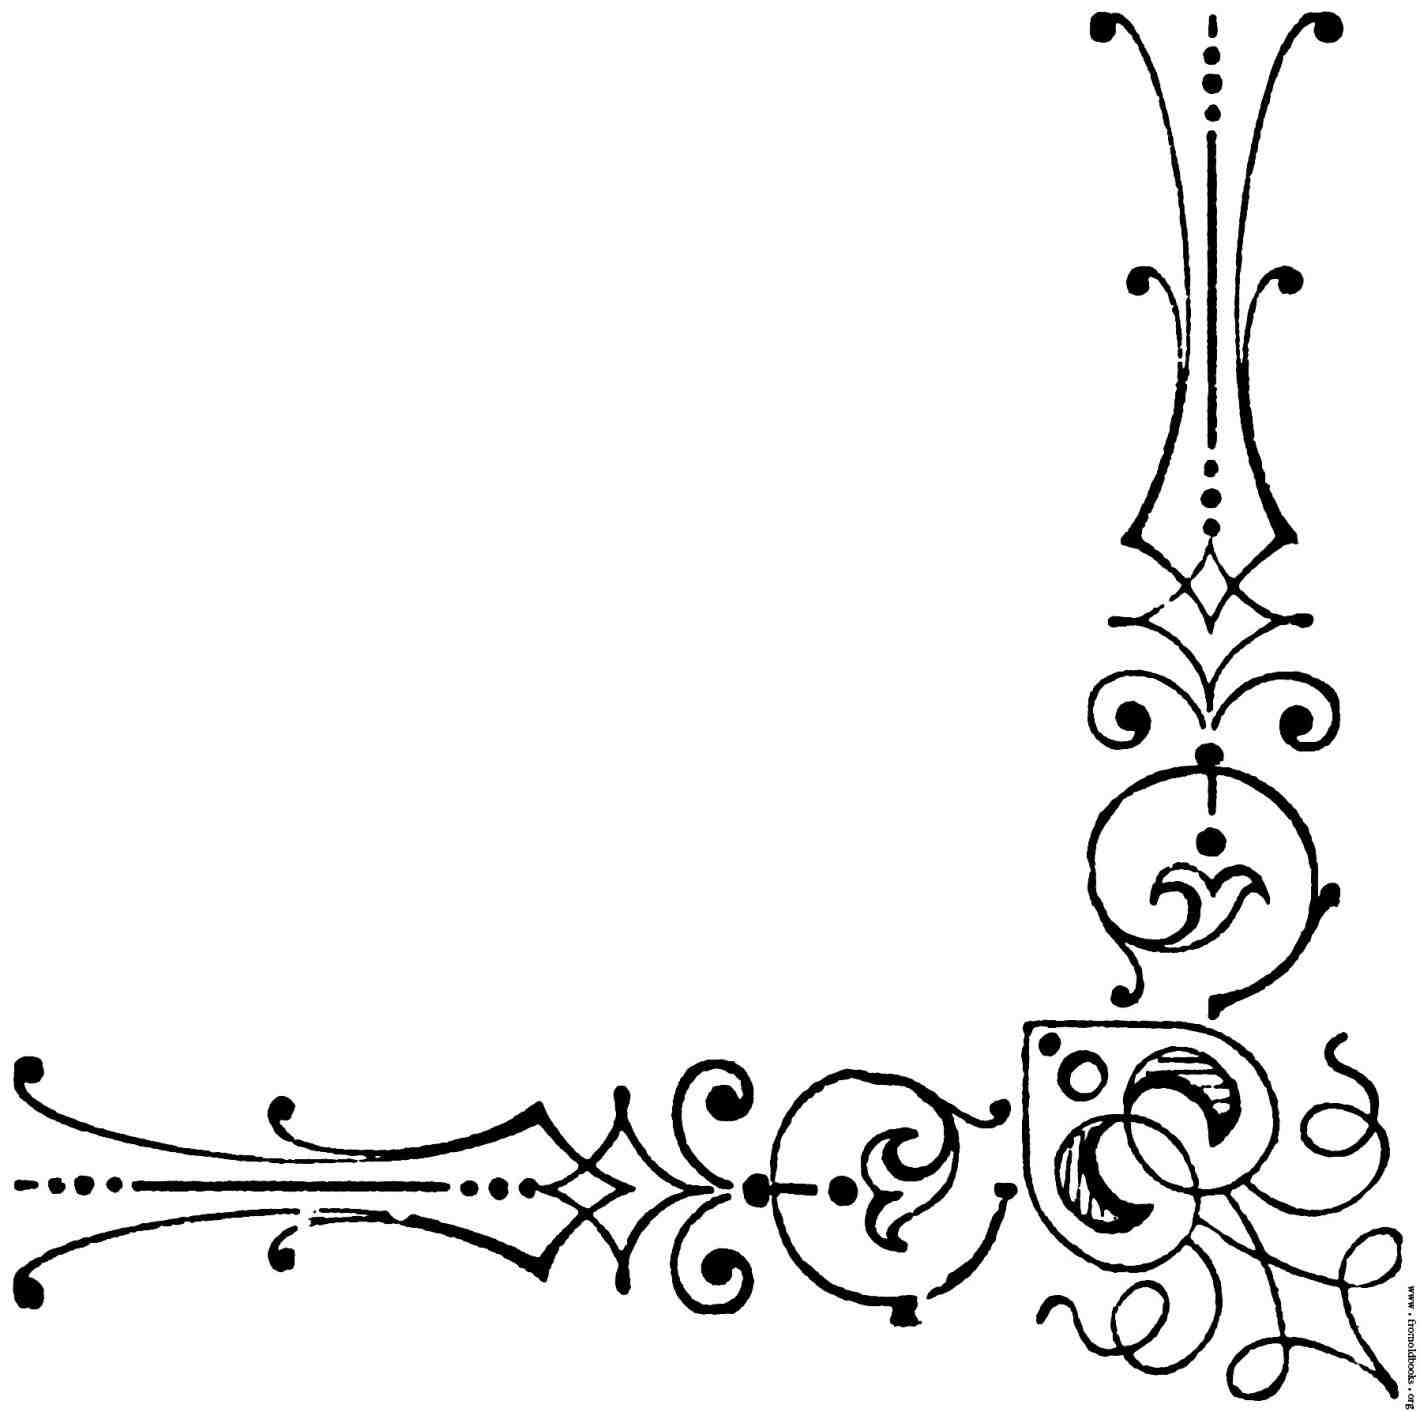 1420x1412 Christmas Page Border Black And White cheminee.website